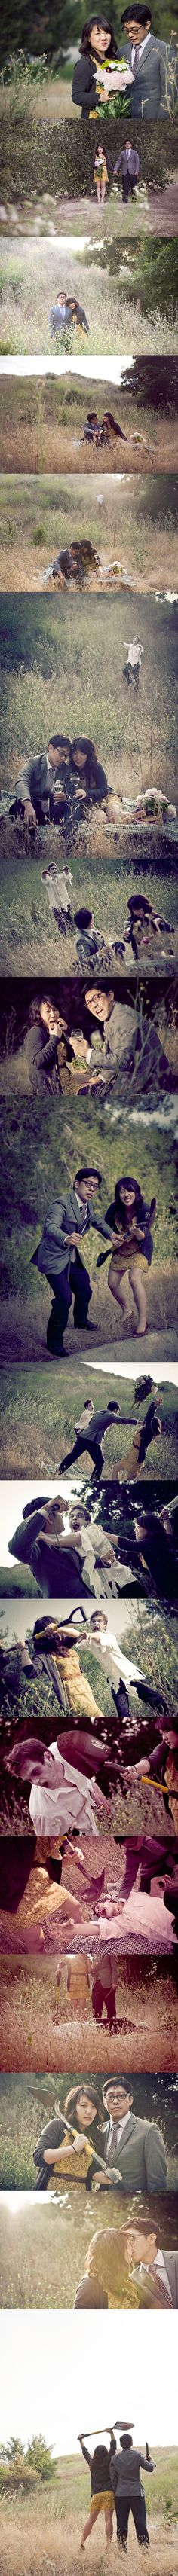 Best engagement pictures ever!